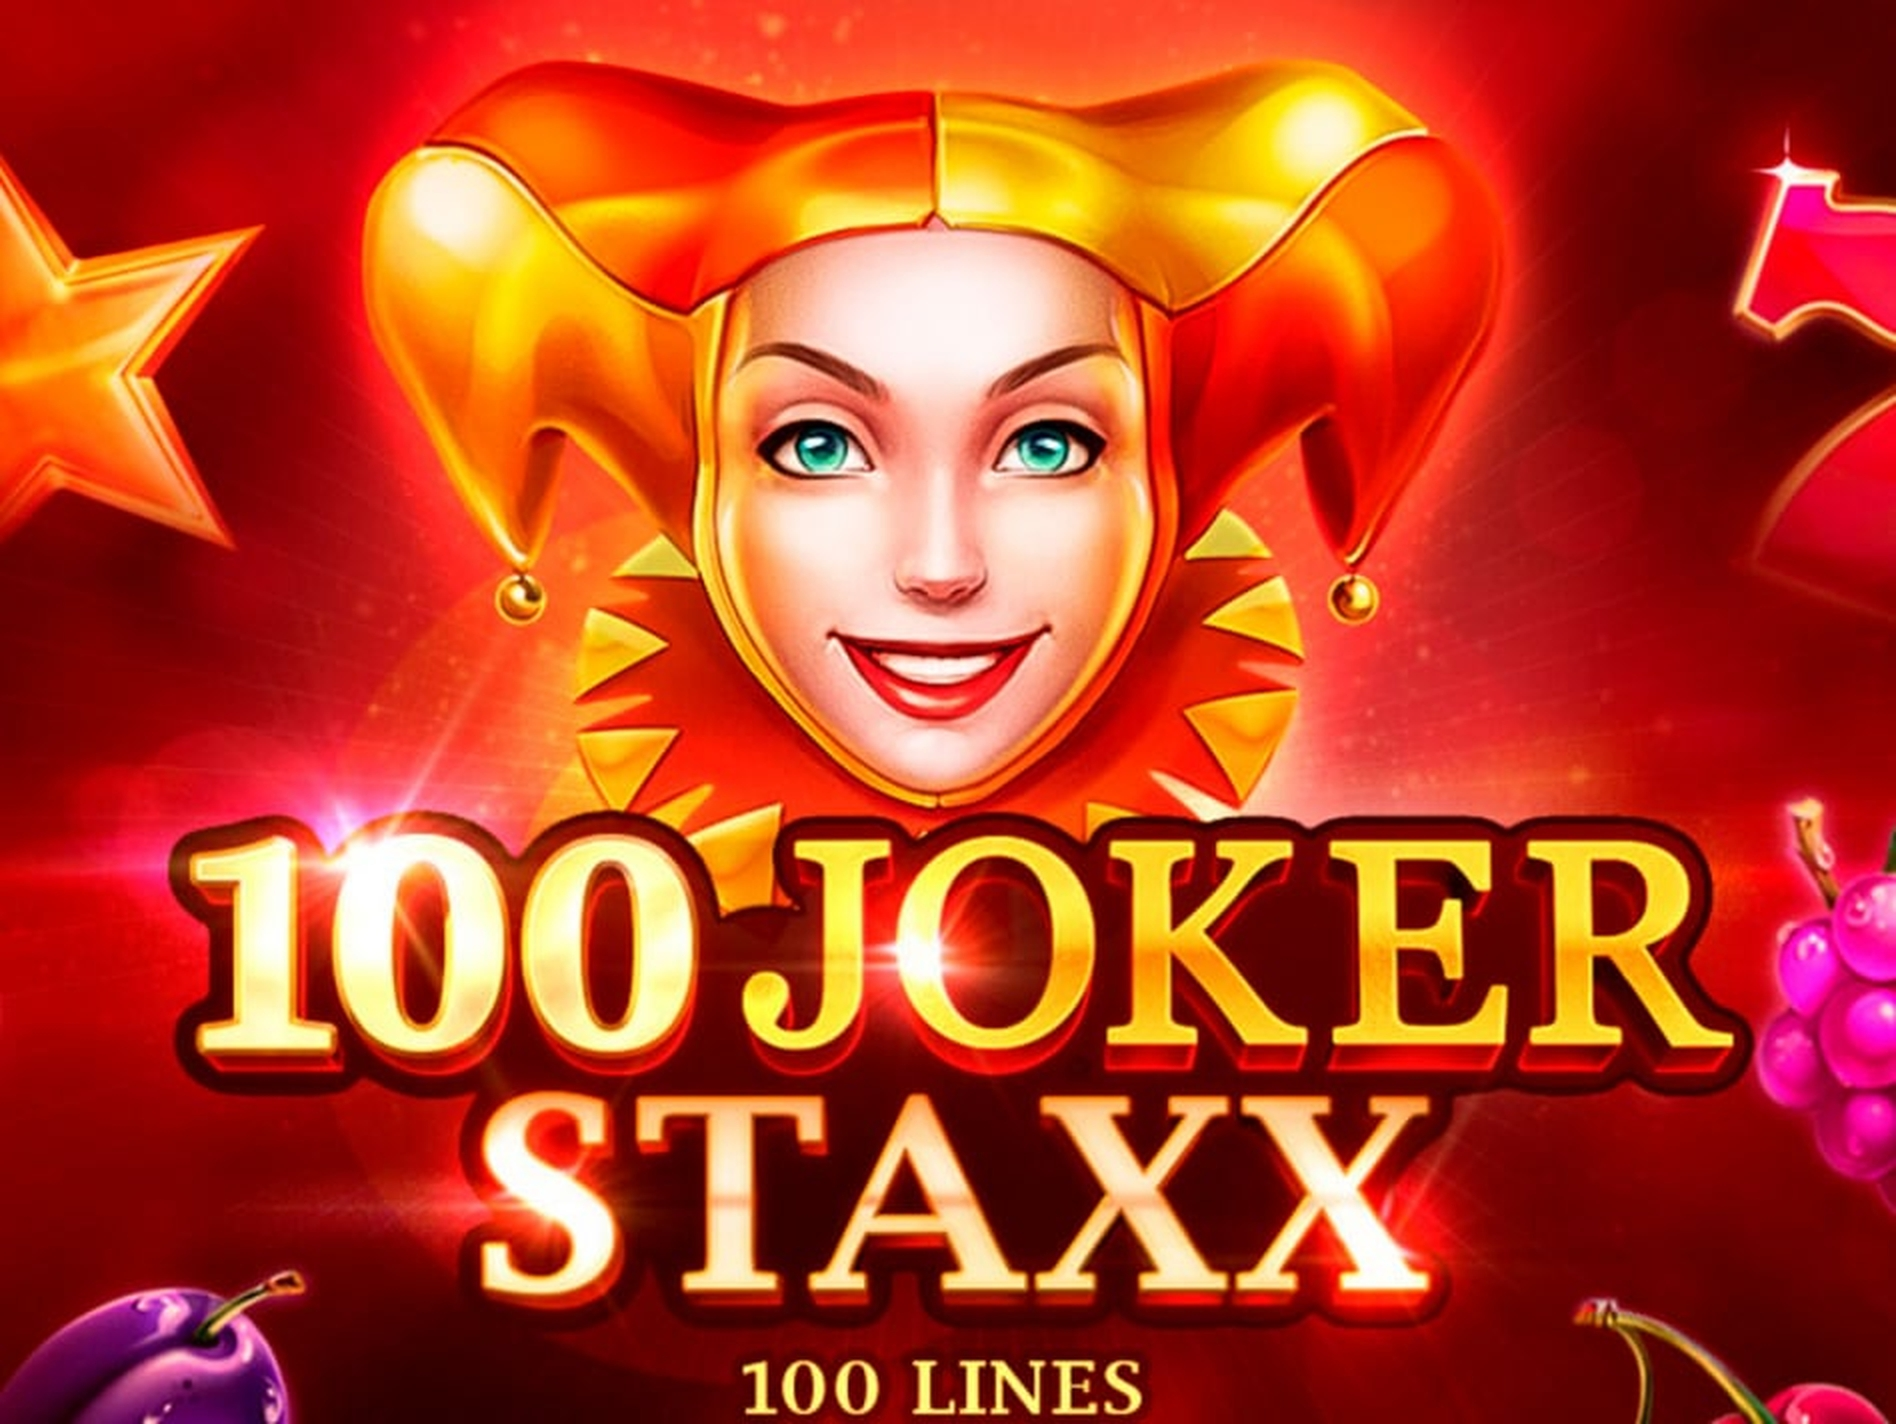 The 100 Joker Staxx Online Slot Demo Game by Playson